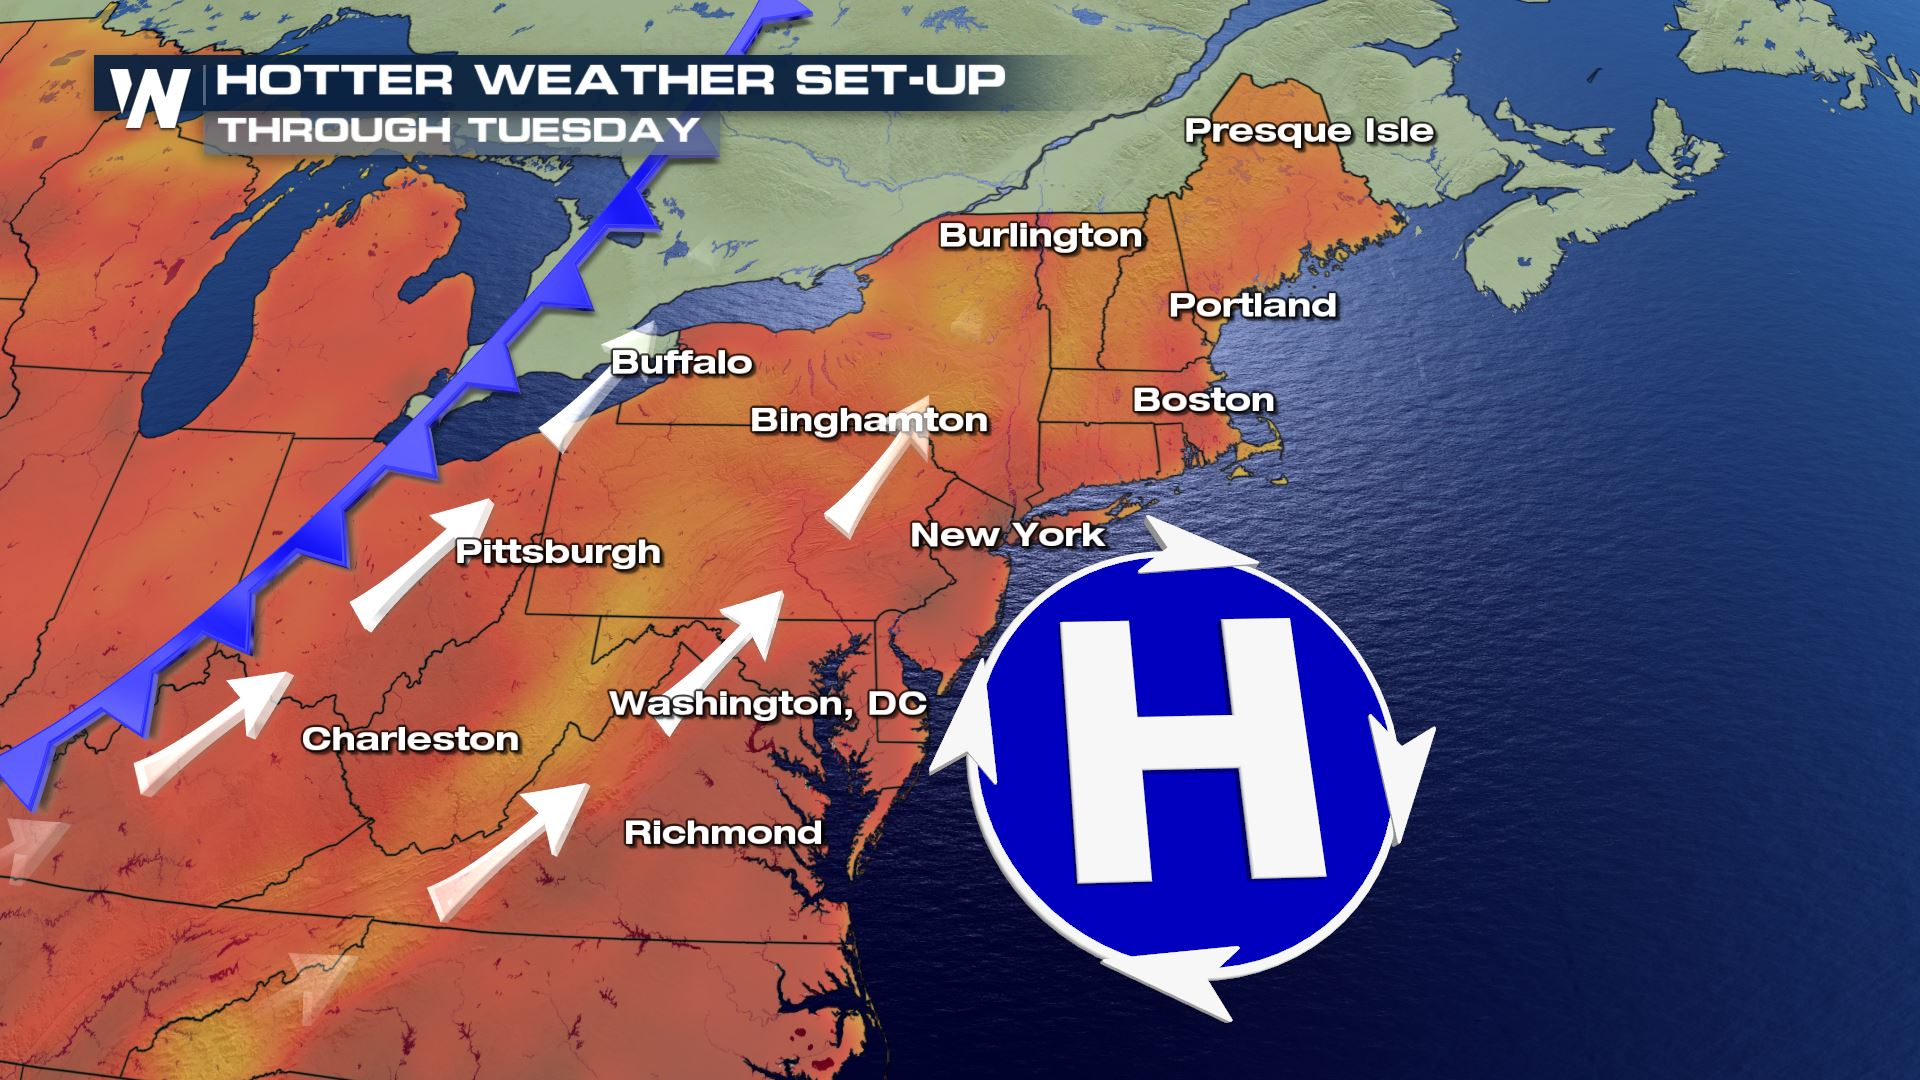 From Soggy to Scorcher Across the Northeast